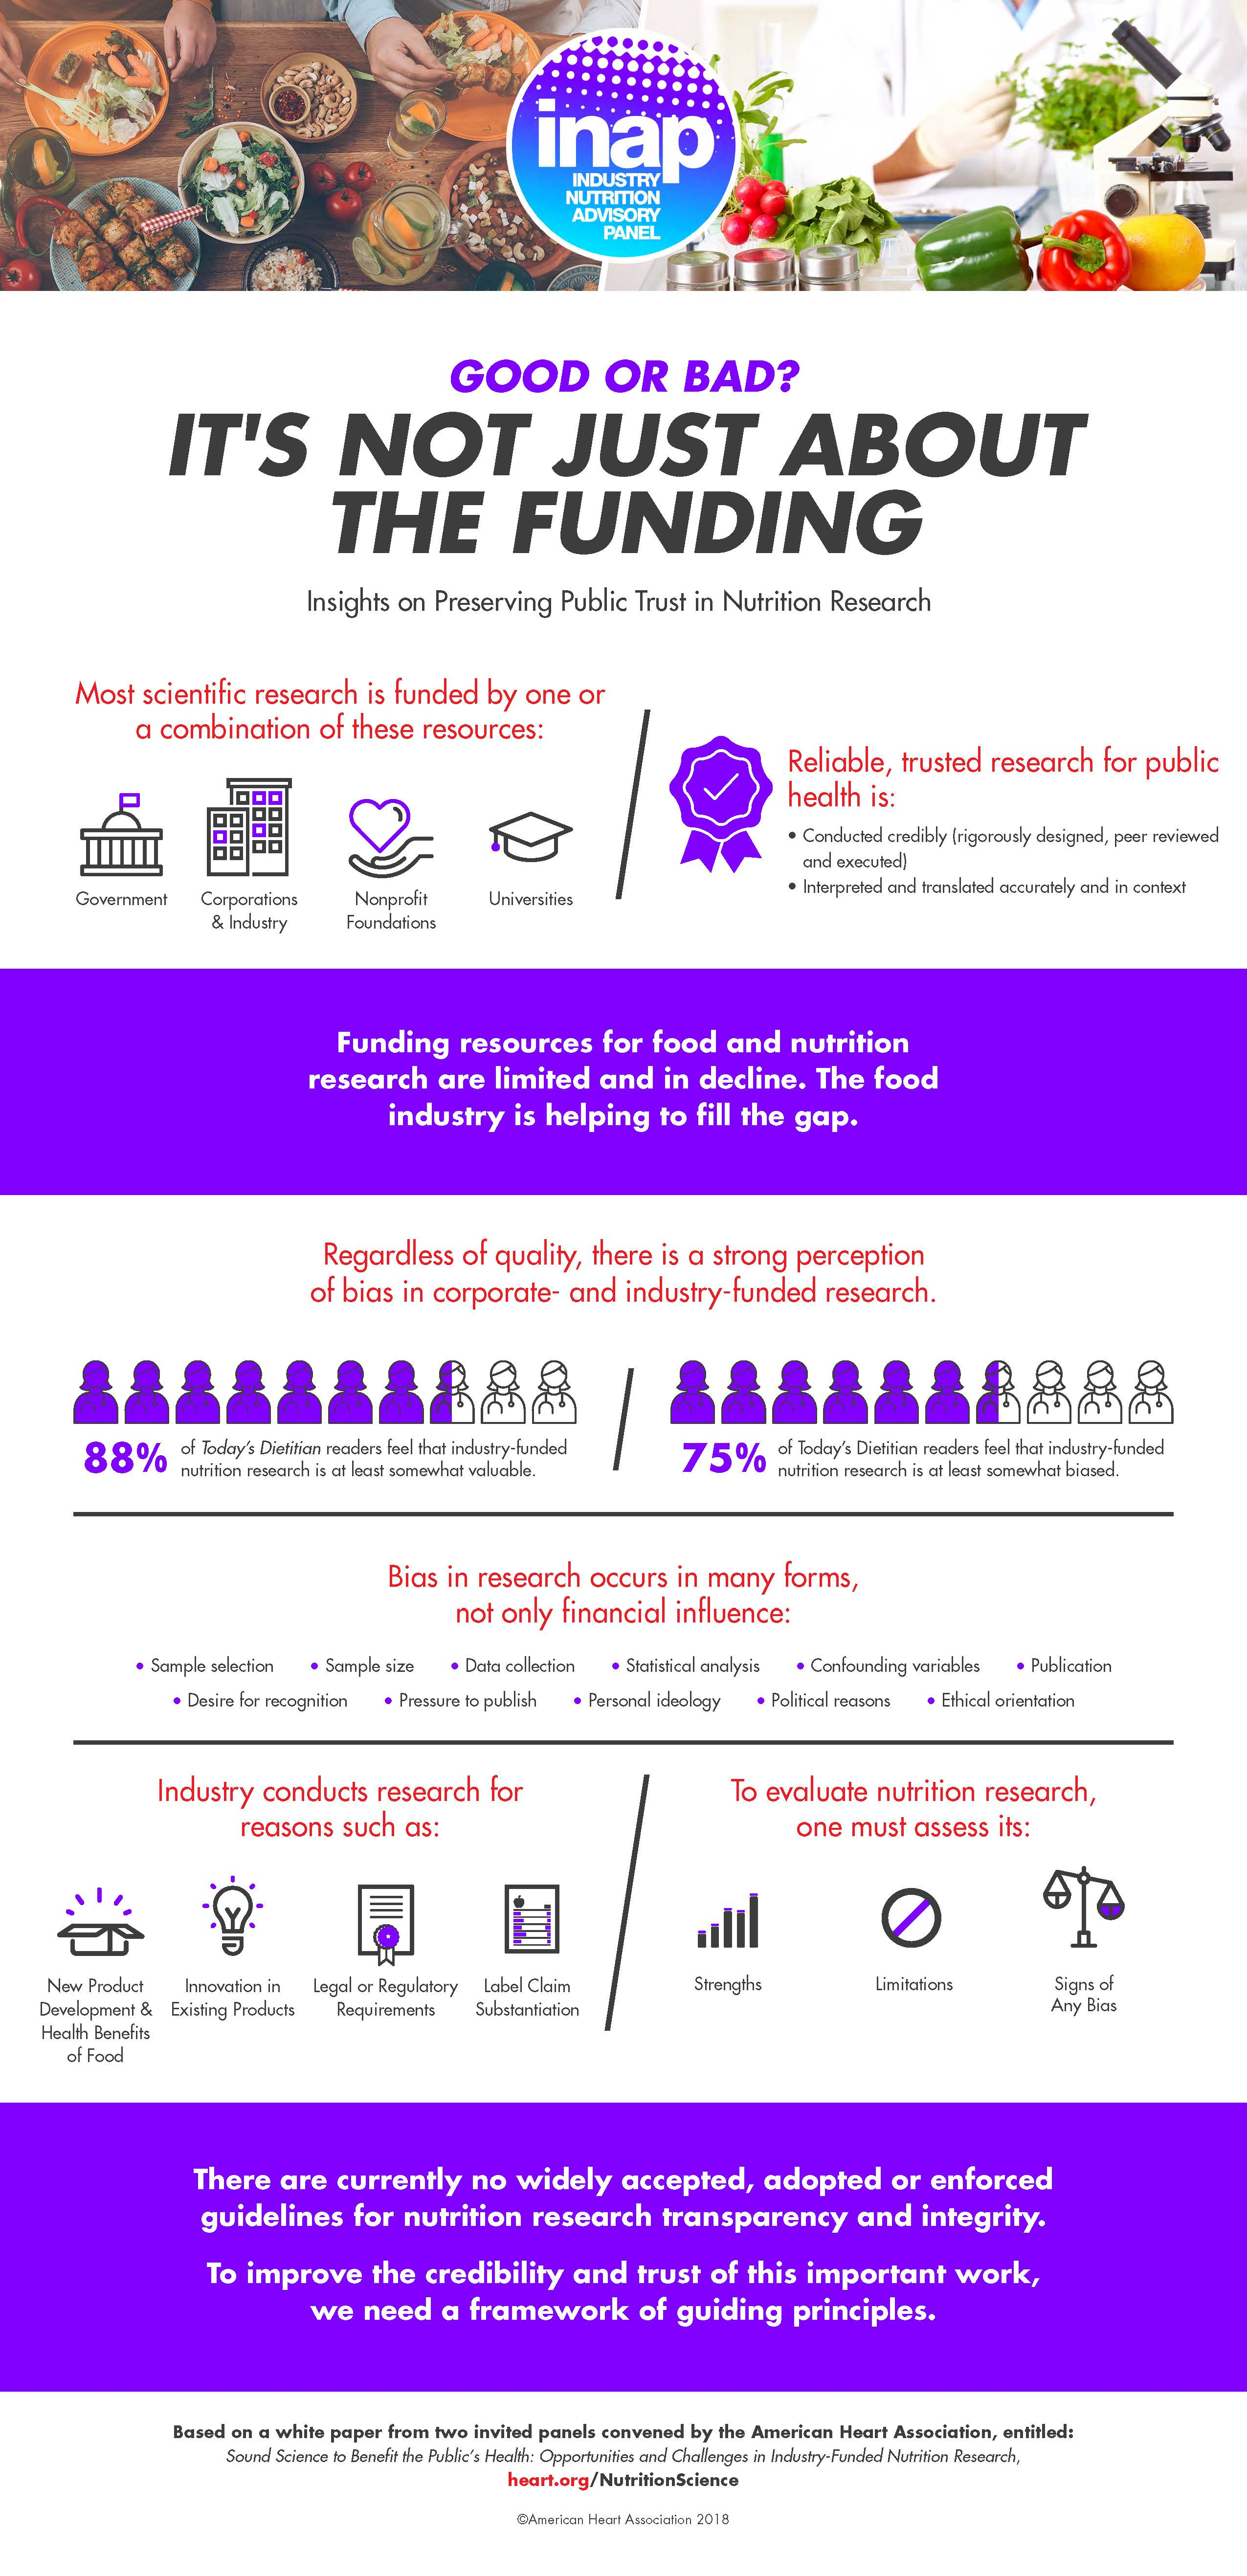 insights on preserving public trust infographic image